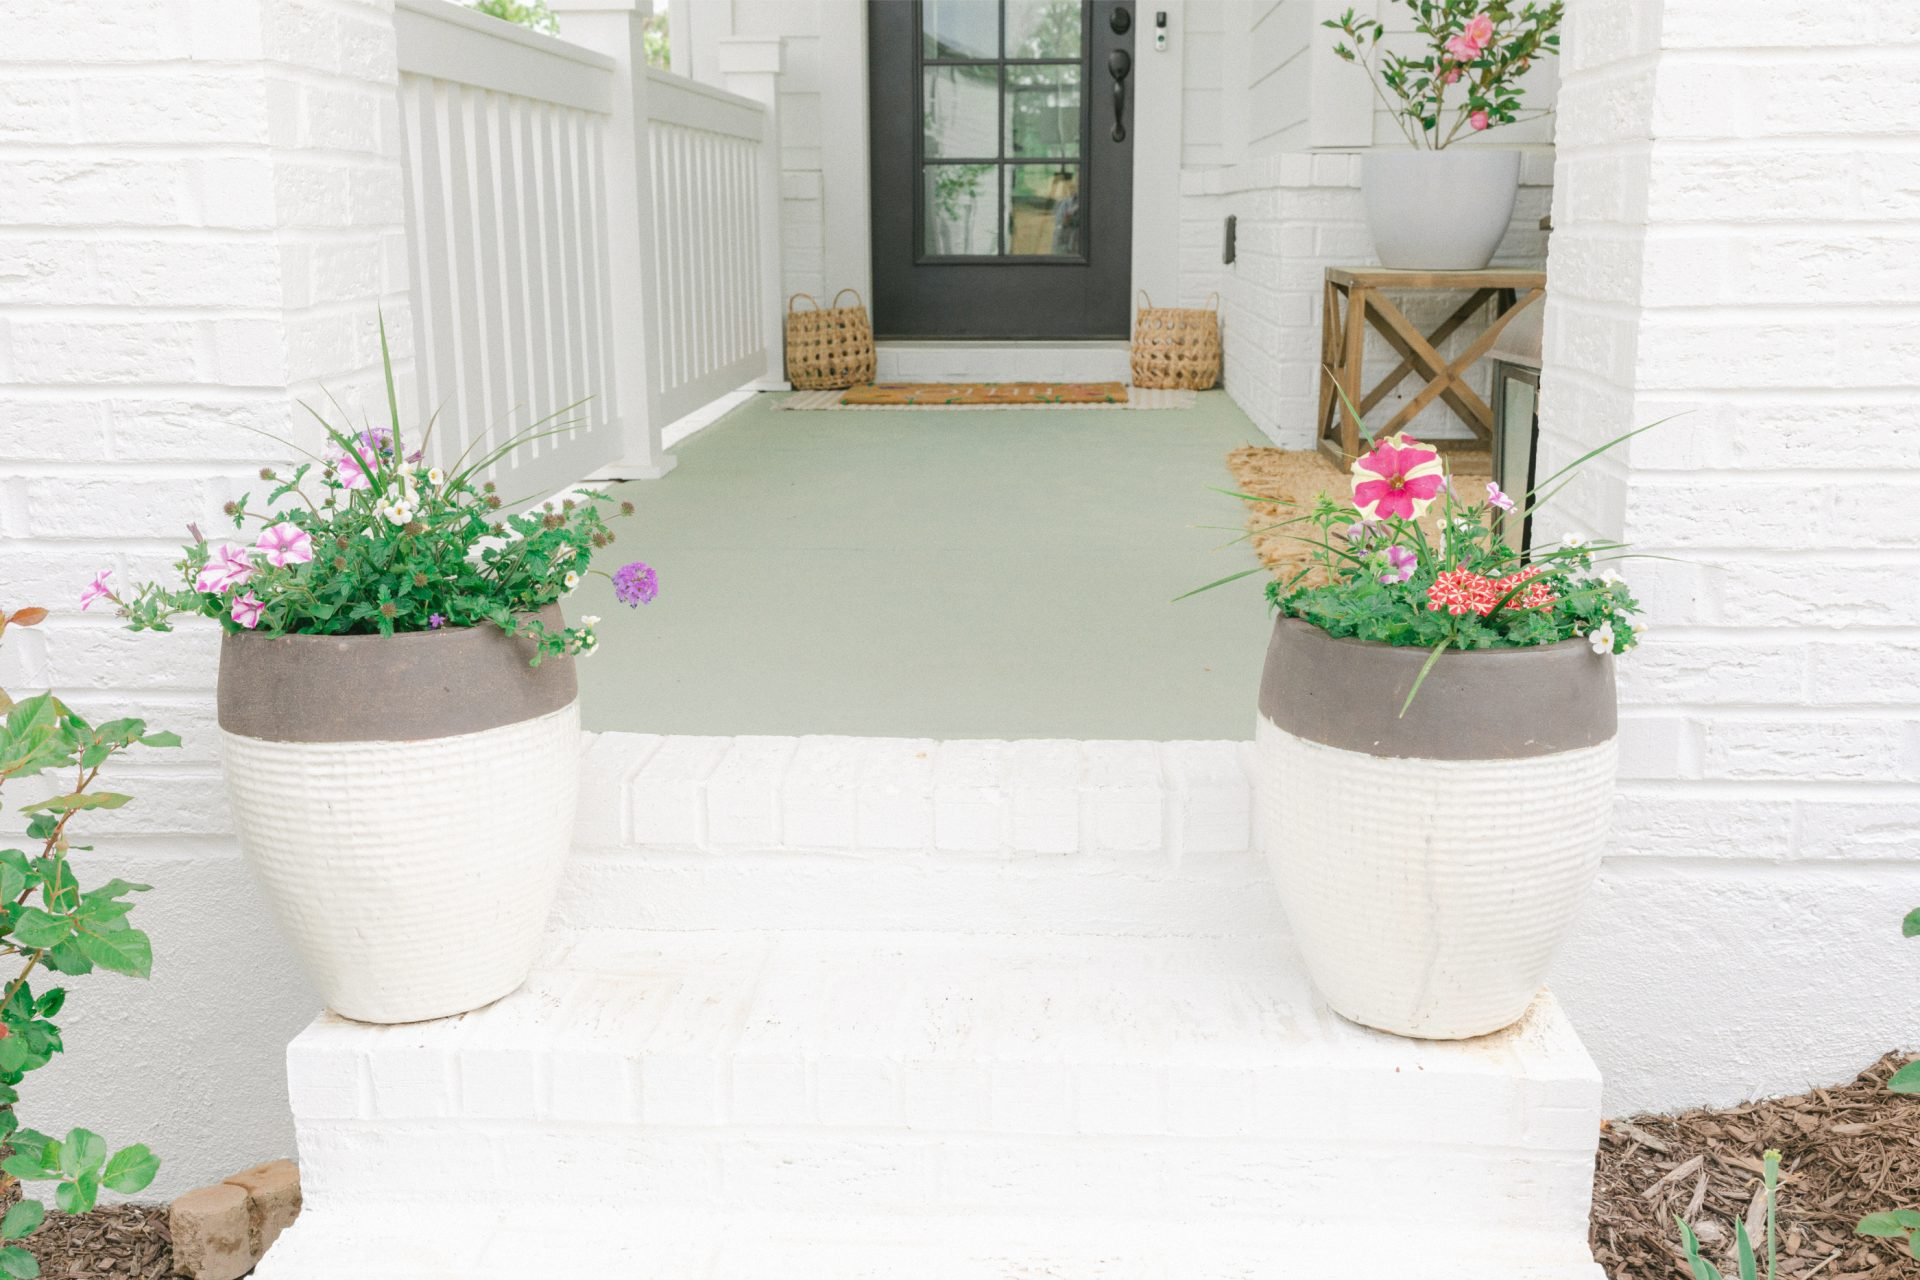 porch, painting porch, flowers, garden, tea leaf green, porch, front porch, kichler fan, light, flowers, cottage garden, couch, jute rug, roses, board and batten house, home decor